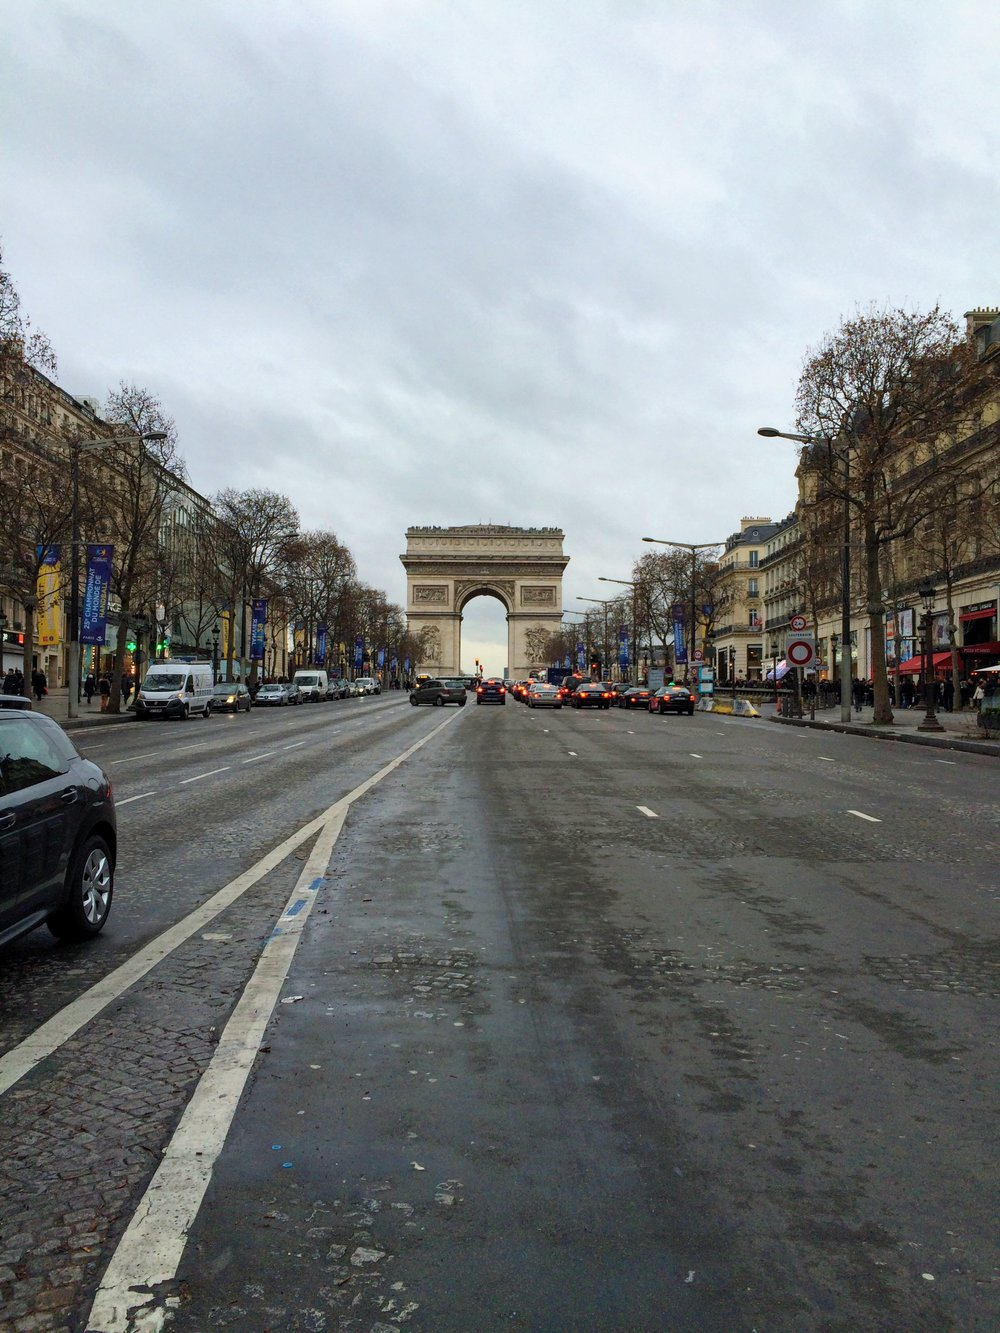 L'Arc De Triomphe, Avenue des Champs-Elysées | Paris | source: Alexis Rockley, Local (Tourist)